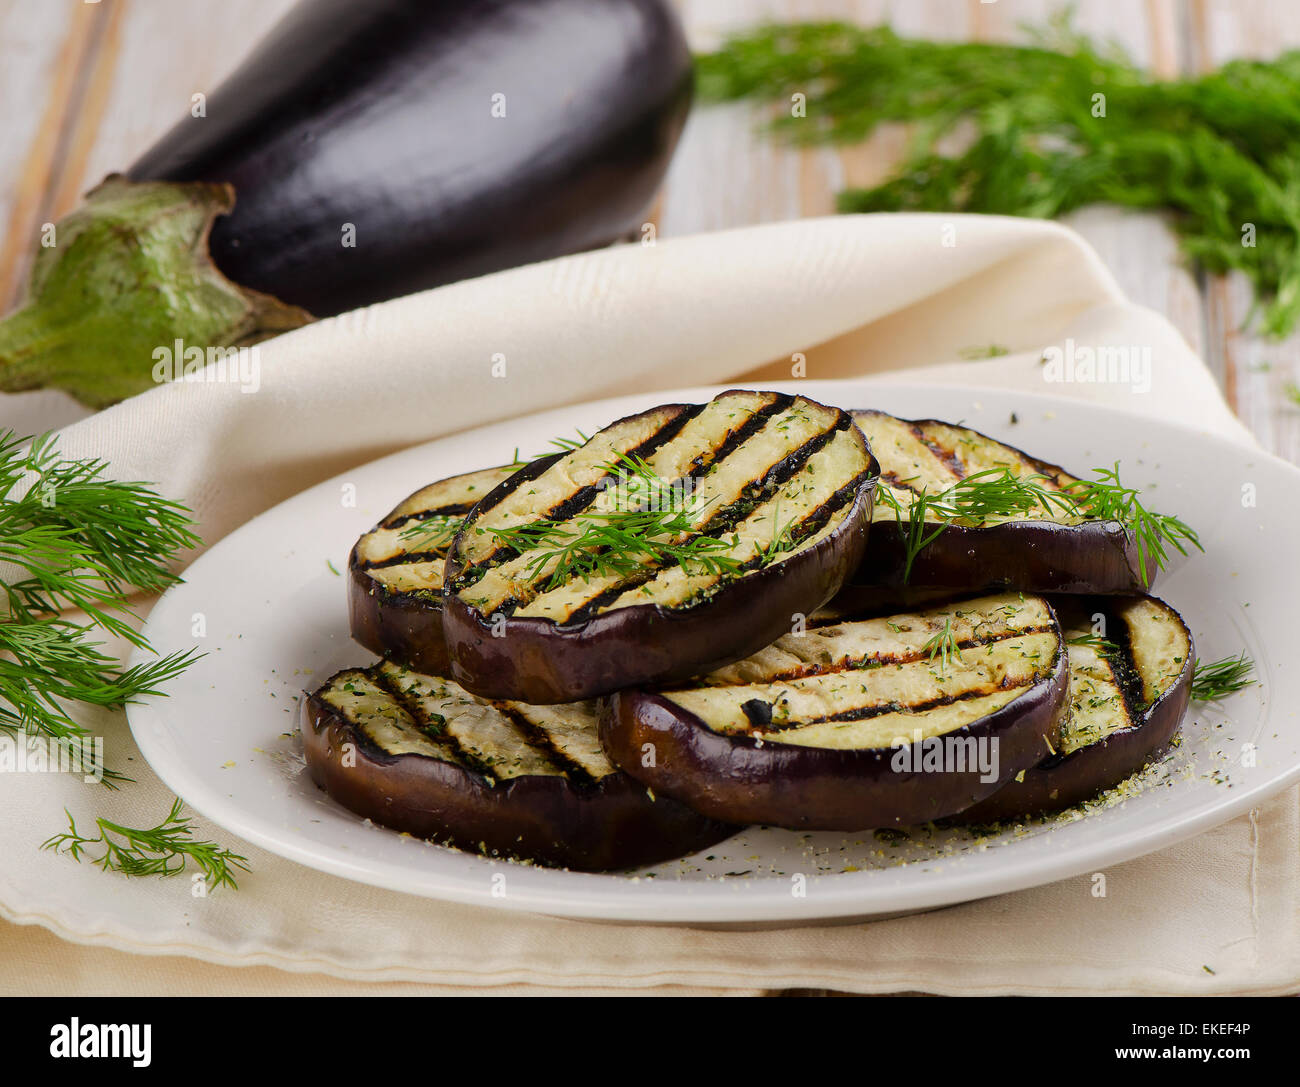 Grilled eggplant  on a  plate. Selective focus - Stock Image